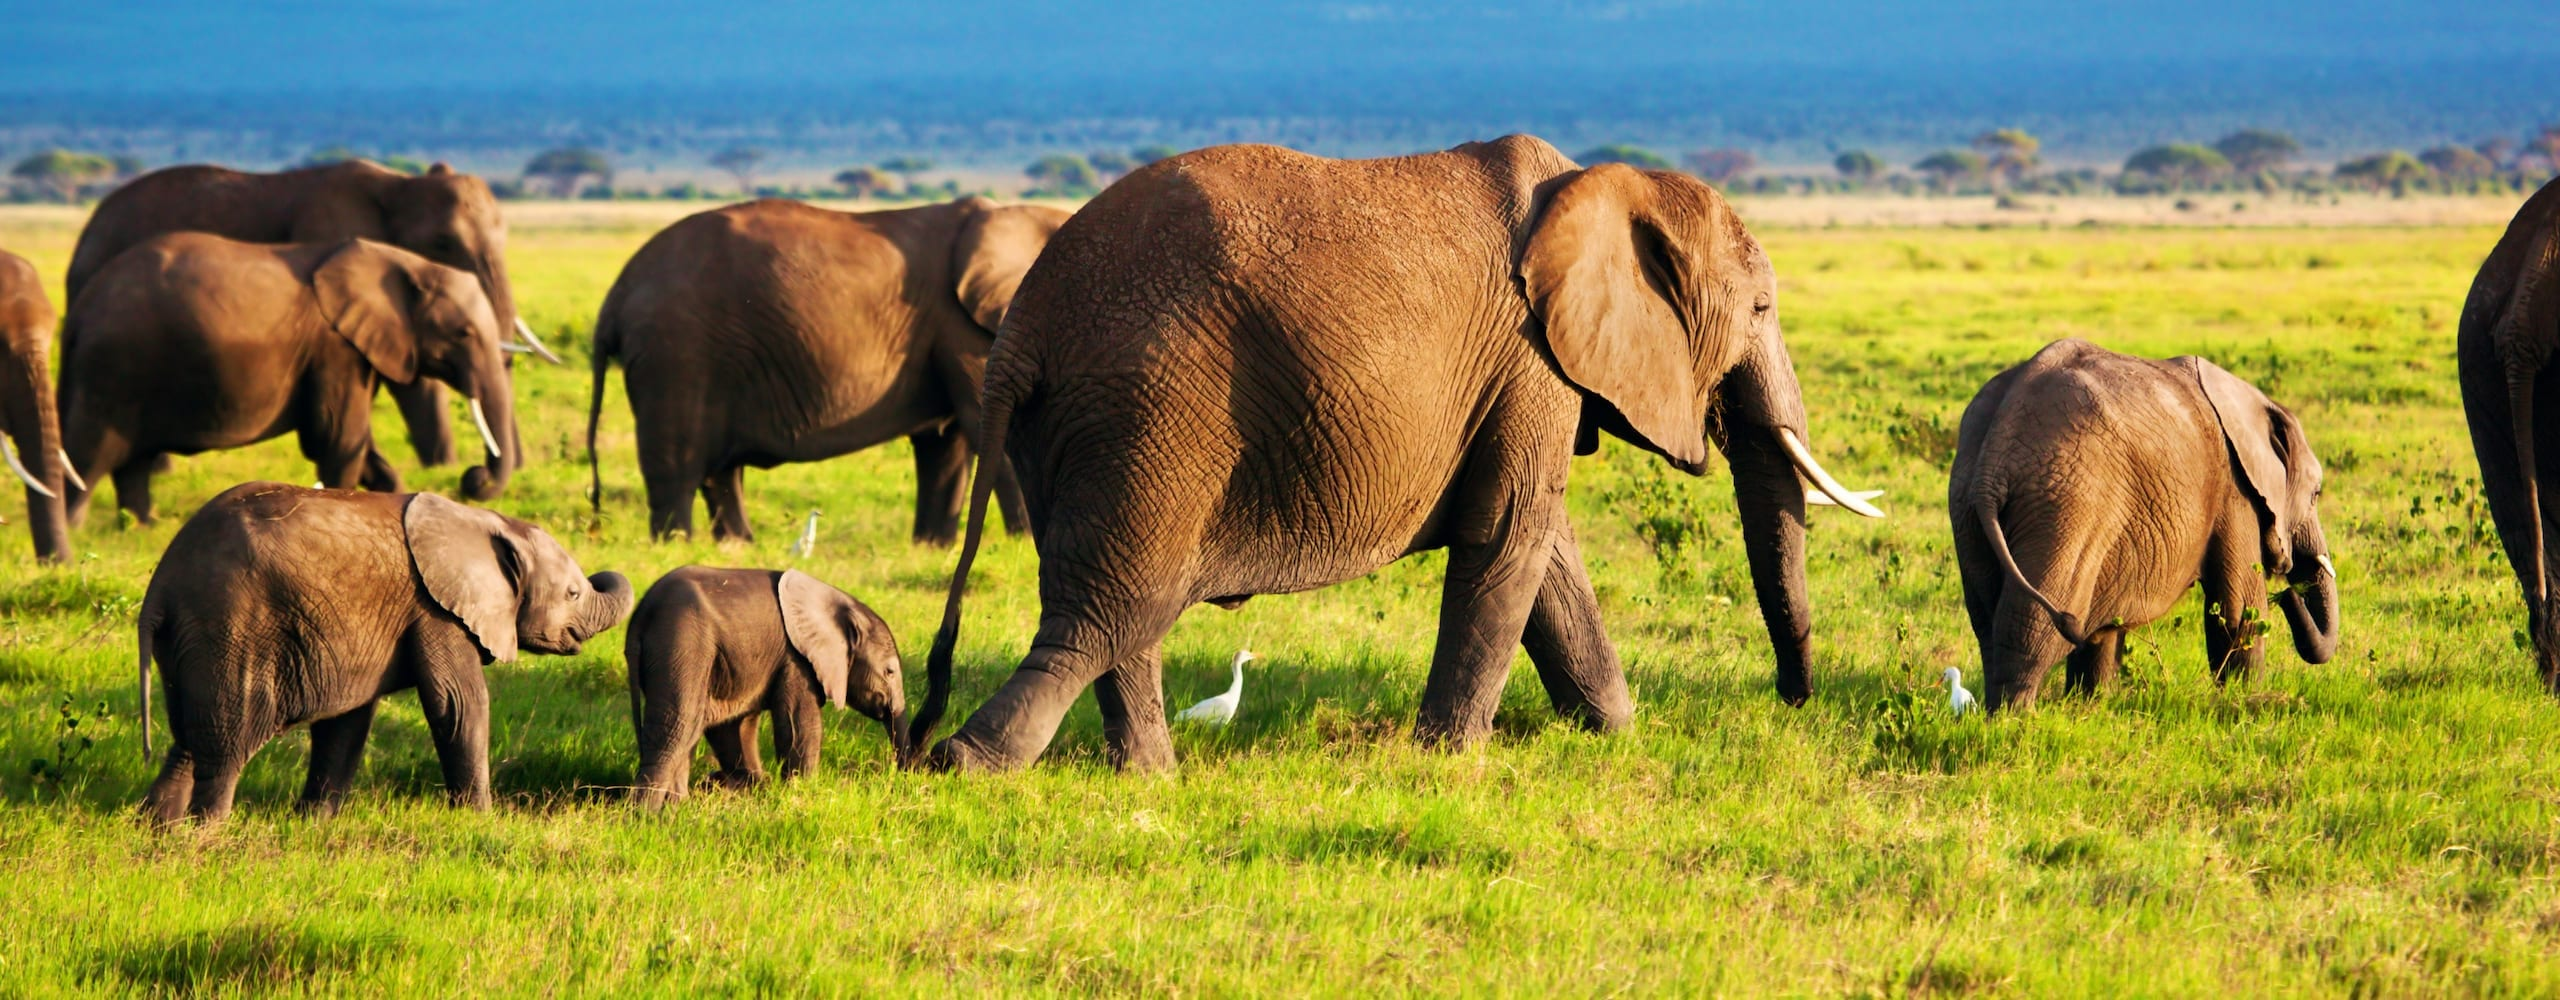 Amboseli is famous for its elephant. © iStock